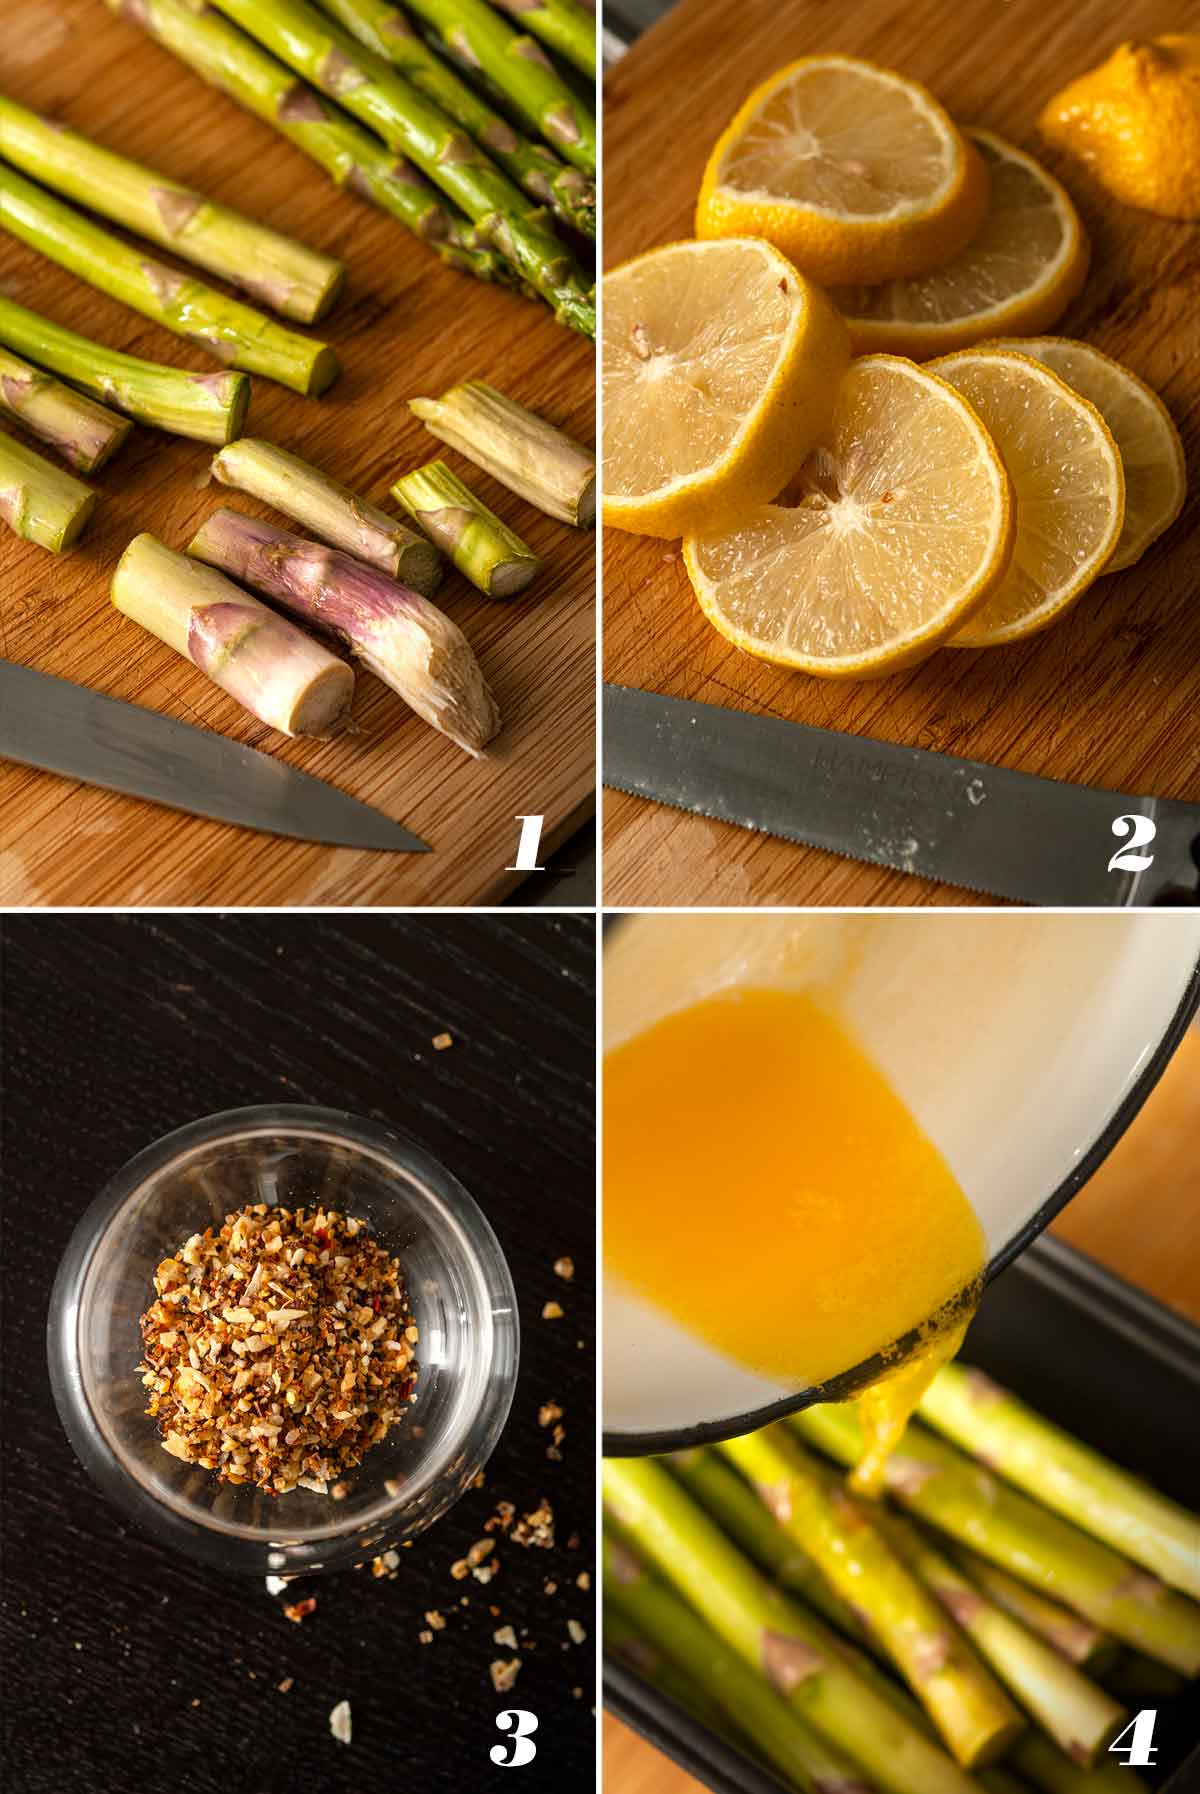 A collage of 4 numbered images showing how to prepare lemon asparagus.